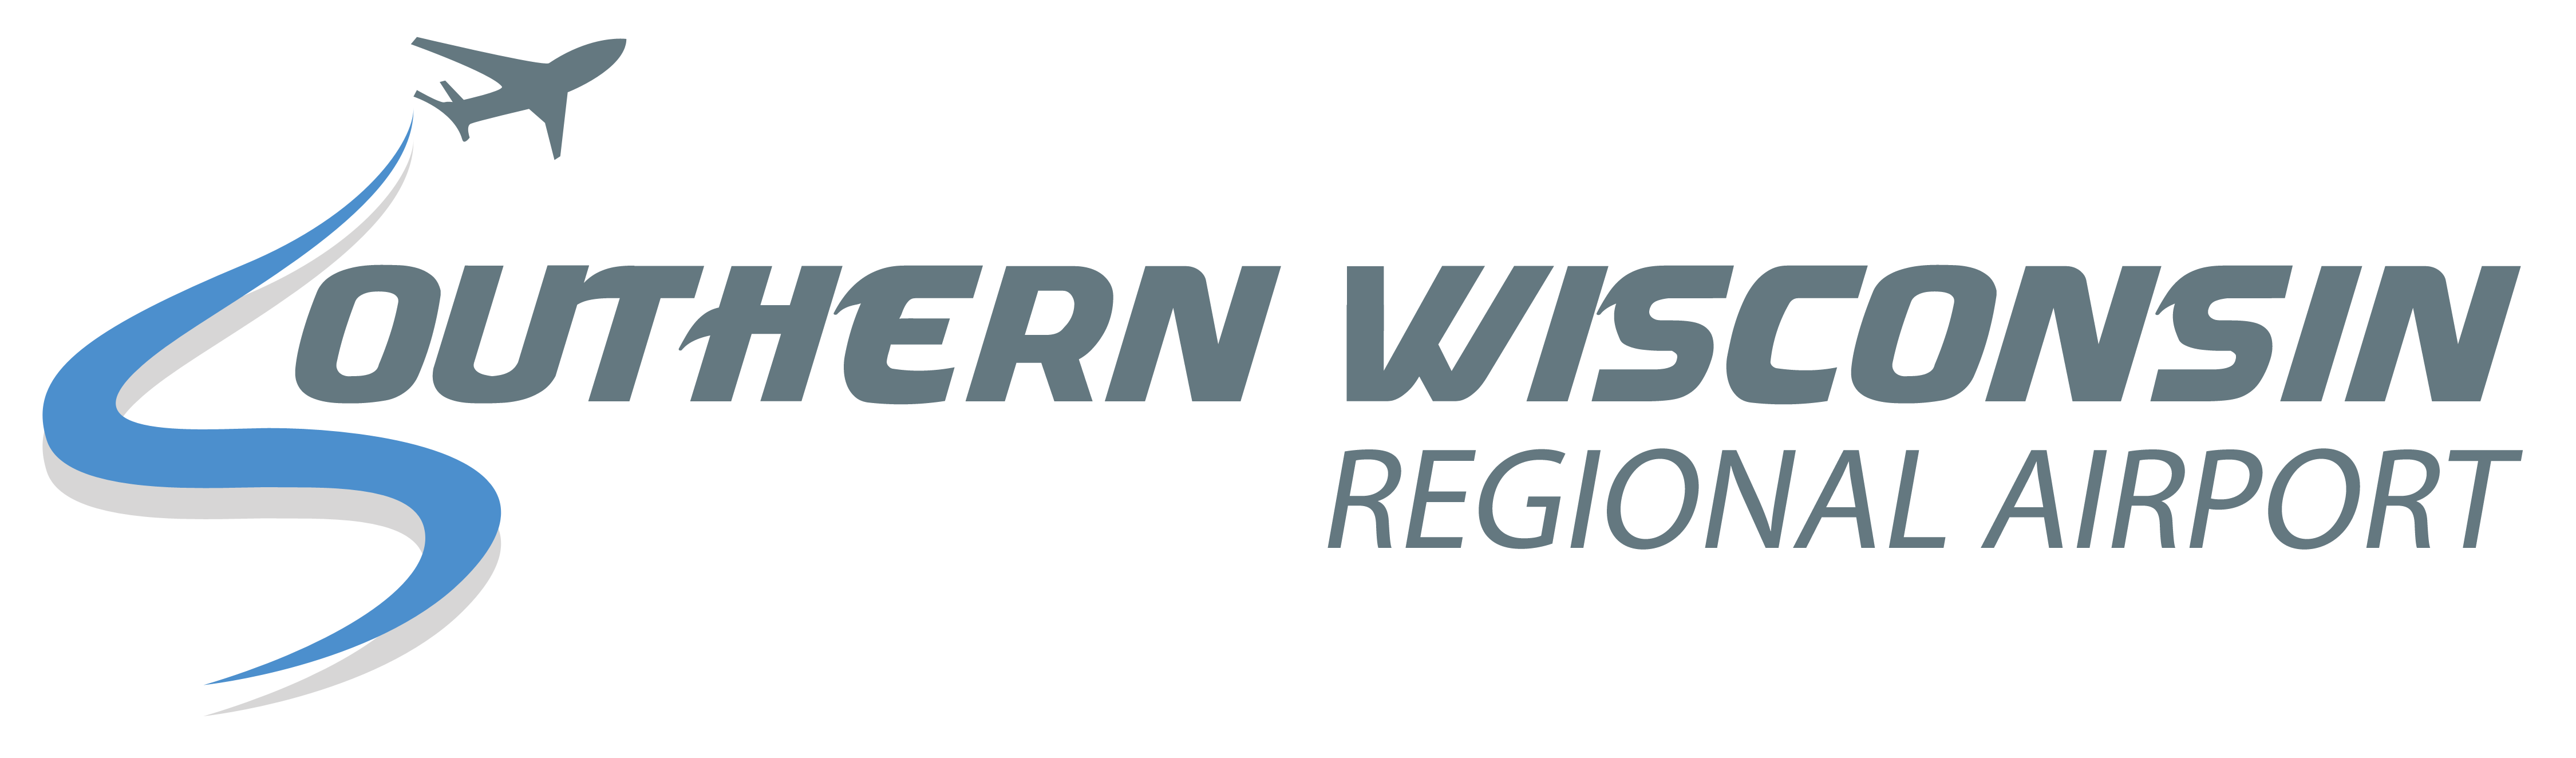 Southern Wisconsin Regional Airport logo